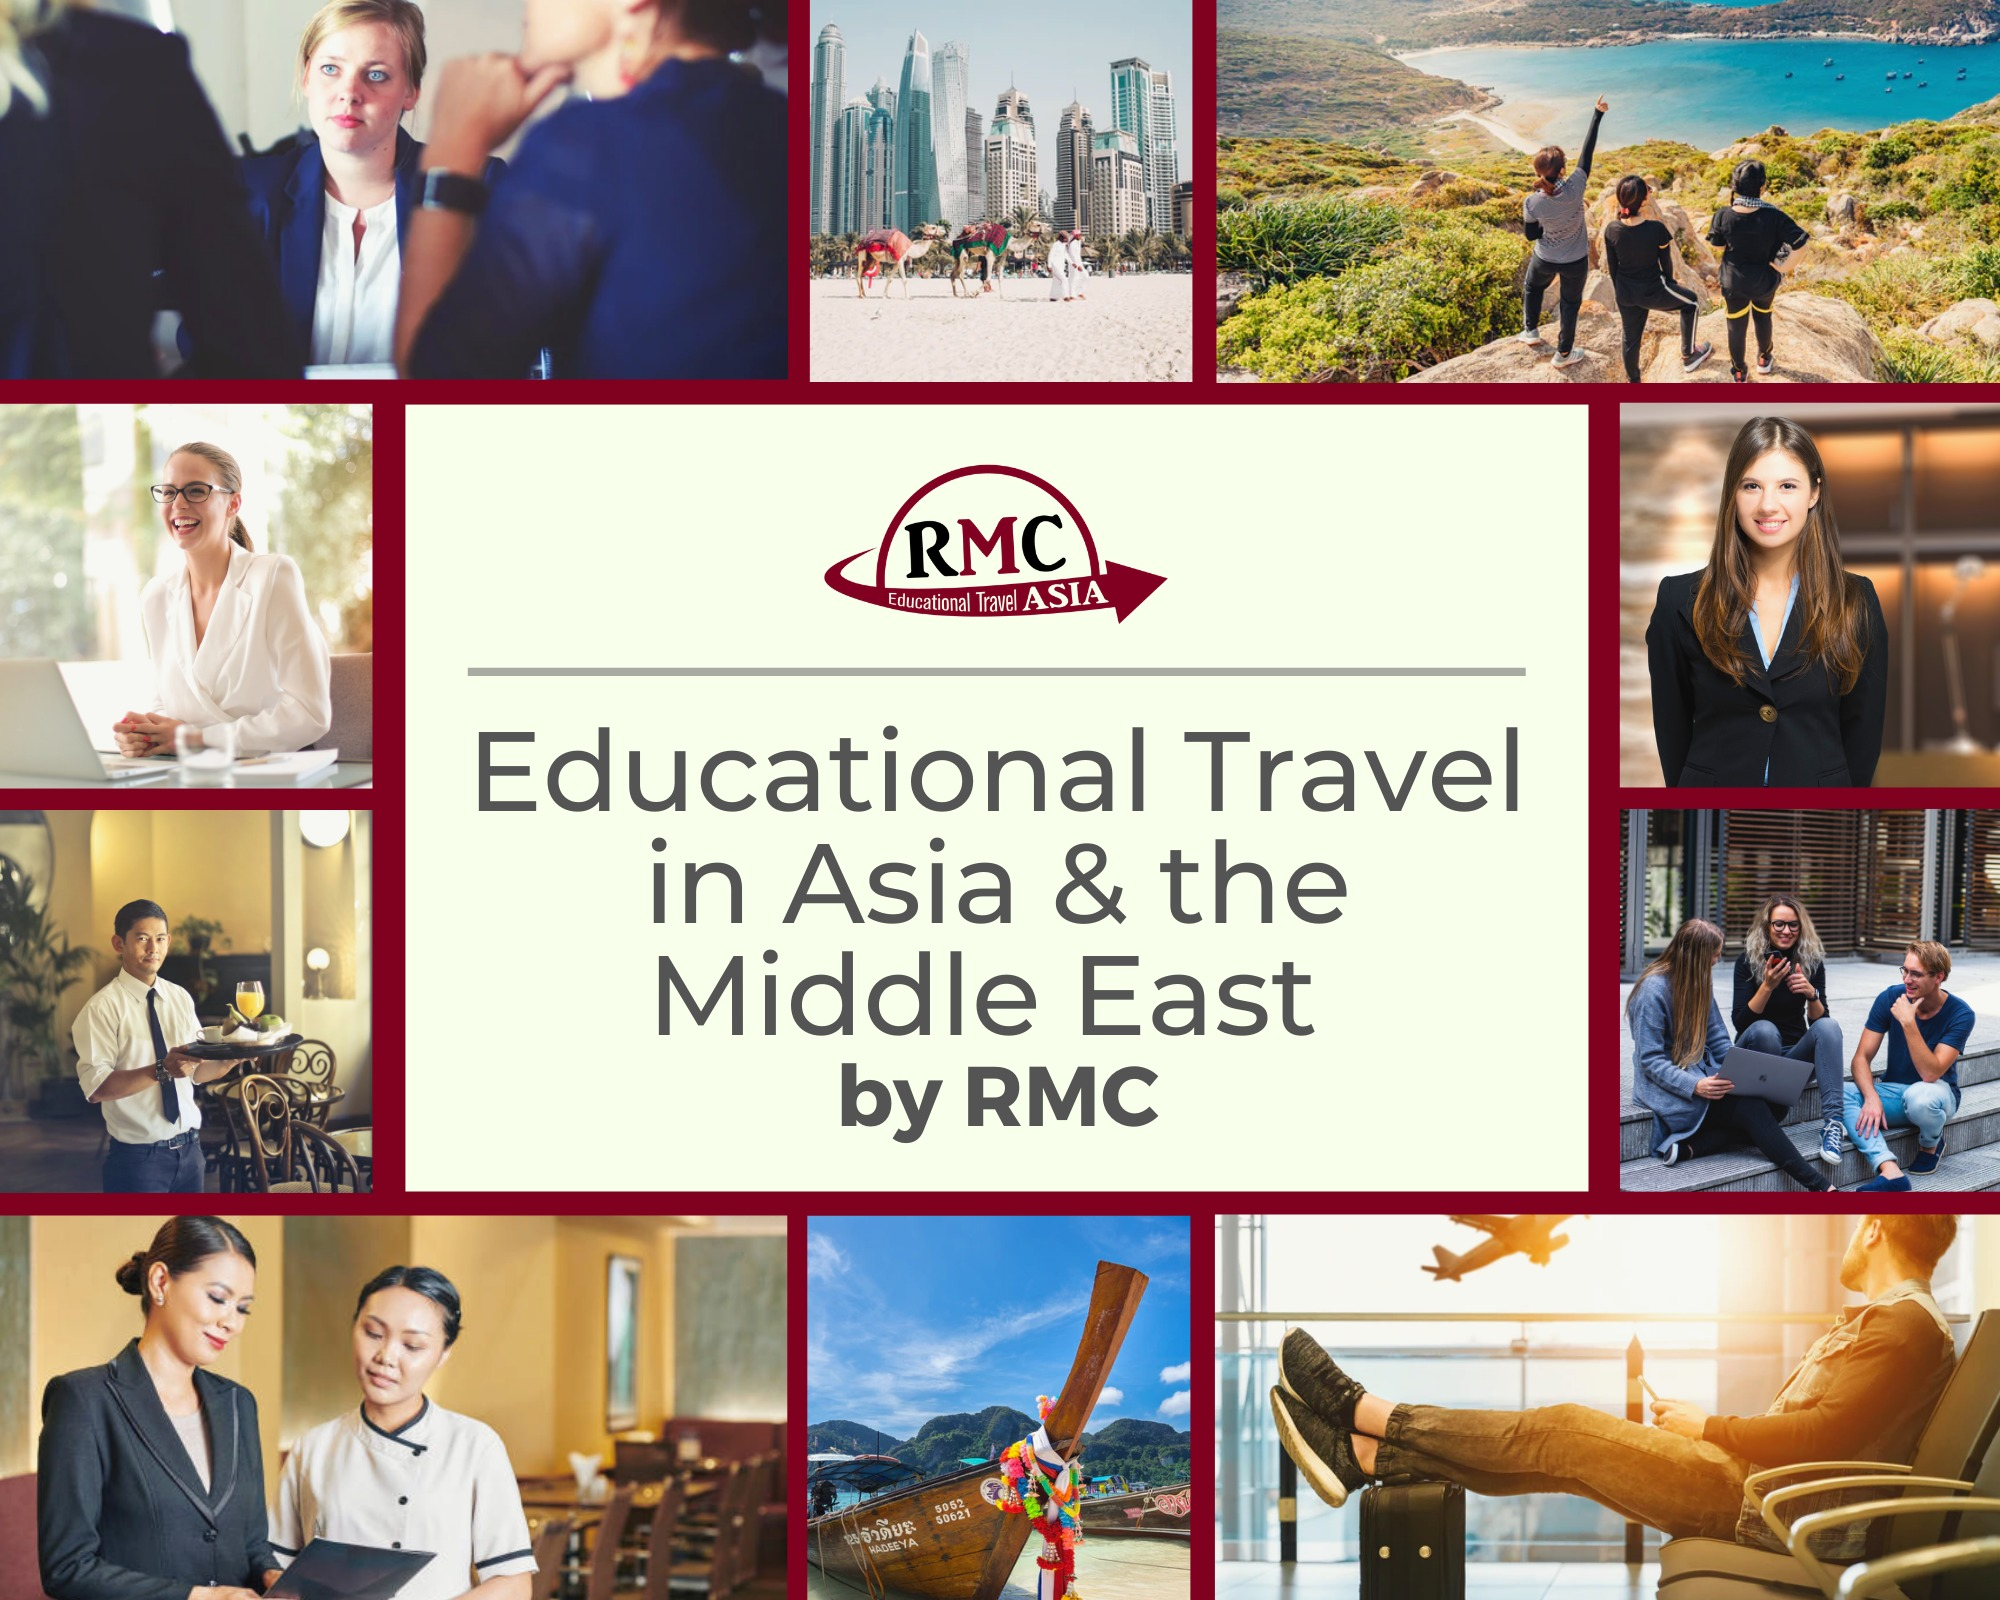 Educational Travel Asia by RMC